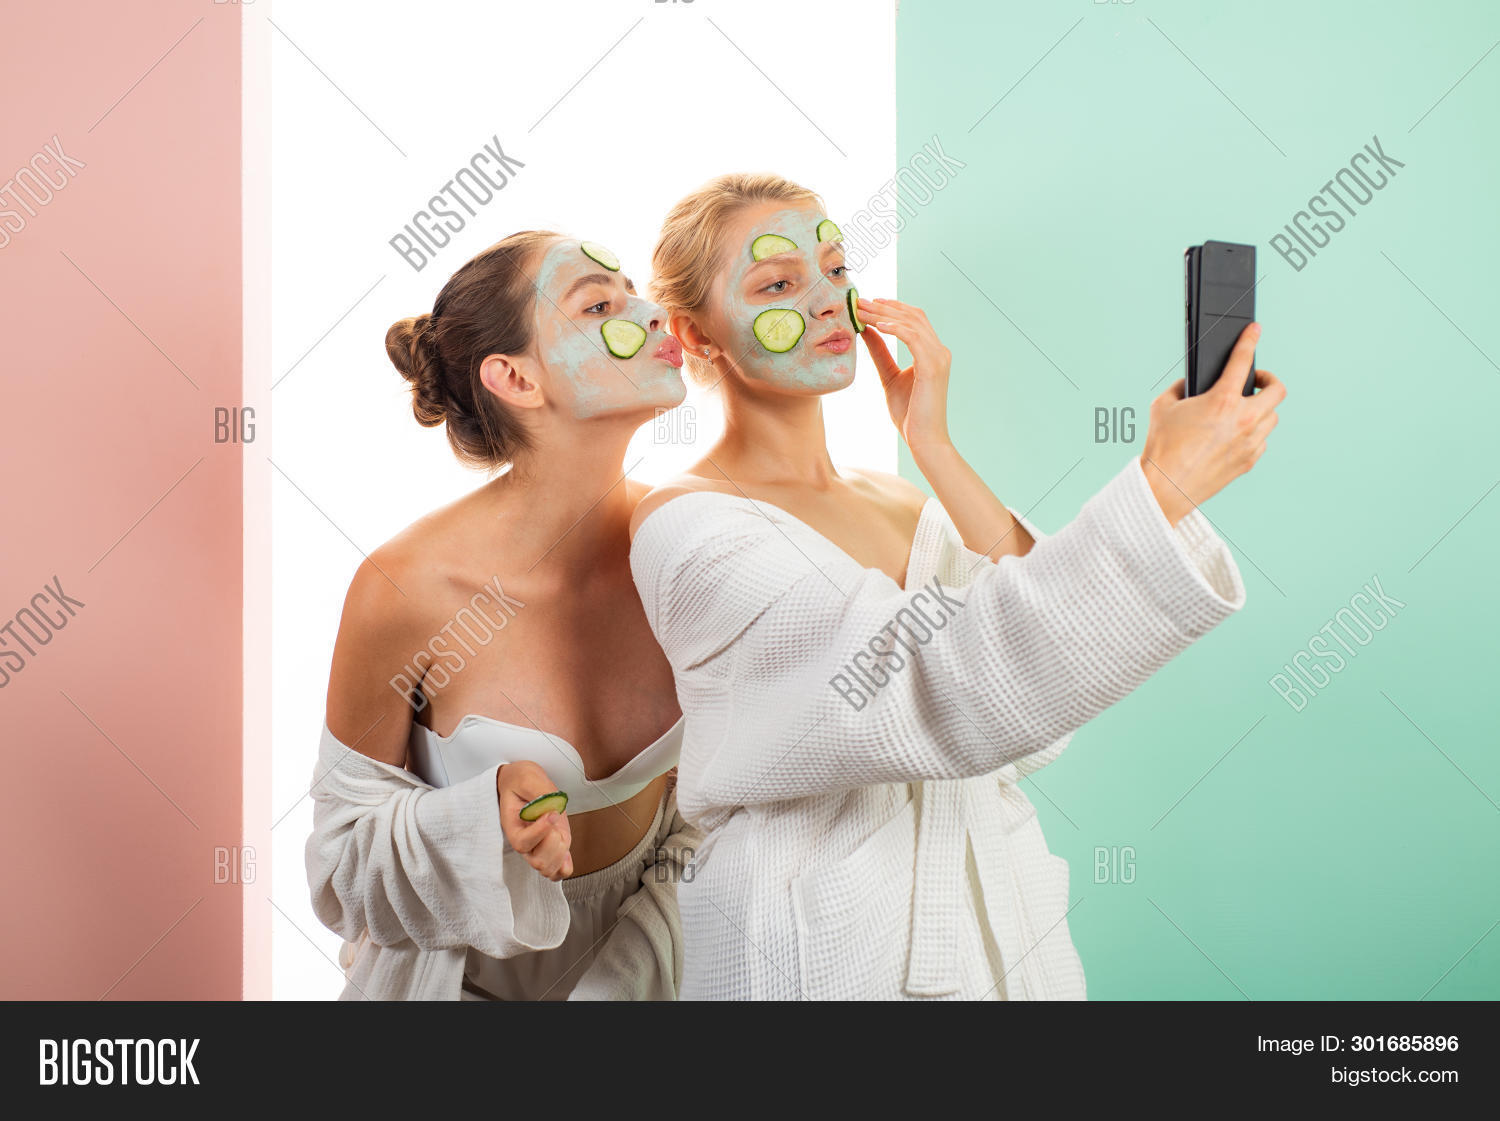 age,all,anti,bathrobe,beautiful,beauty,care,clay,concept,cream,cucumber,facial,femininity,fresh,freshness,friends,fun,girls,having,internet,making,mask,natural,perfect,pretty,product,pure,relax,salon,selfie,sensual,sisters,skin,spa,taking,therapy,treatment,wellbeing,wellness,women